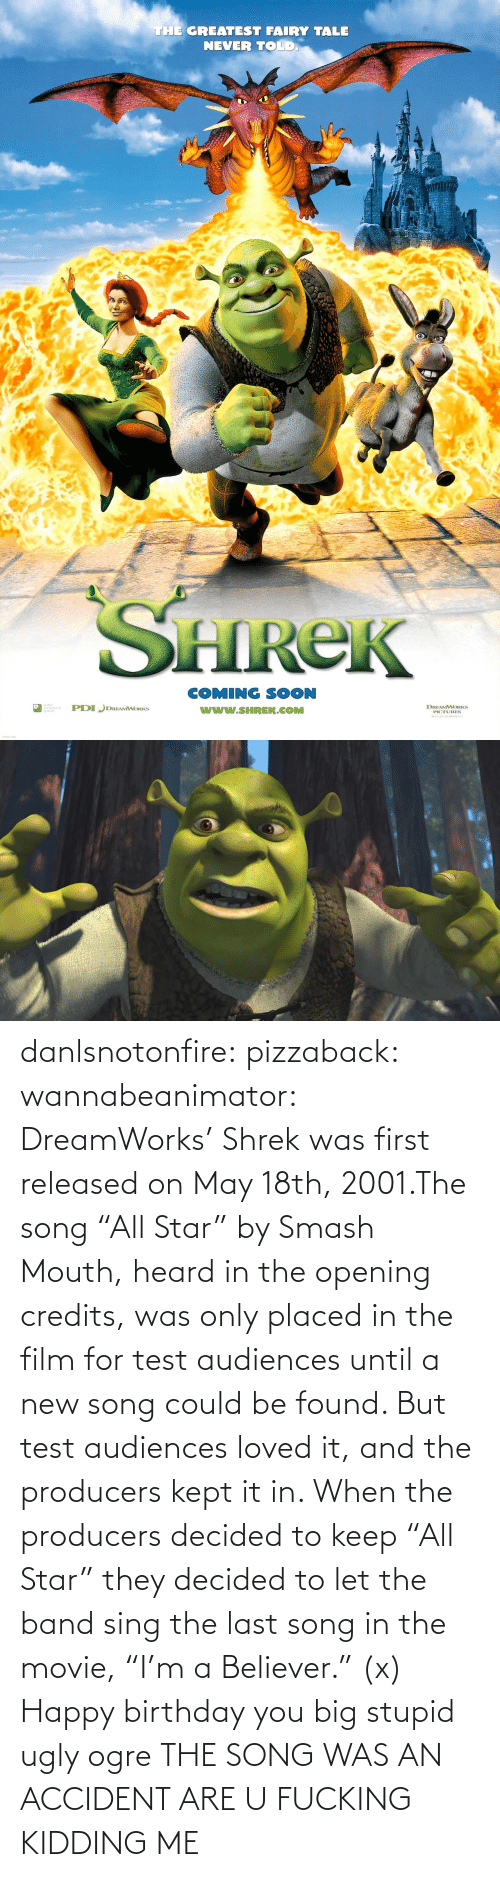 "Believer: THE GREATEST FAIRY TALE  NEVER TOLD  HReK  COMING SOON  www.SHREK.COMM  ted  DREAMWORKS danlsnotonfire:  pizzaback:  wannabeanimator:  DreamWorks' Shrek was first released on May 18th, 2001.The song ""All Star"" by Smash Mouth, heard in the opening credits, was only placed in the film for test audiences until a new song could be found. But test audiences loved it, and the producers kept it in. When the producers decided to keep ""All Star"" they decided to let the band sing the last song in the movie, ""I'm a Believer."" (x)  Happy birthday you big stupid ugly ogre  THE SONG WAS AN ACCIDENT ARE U FUCKING KIDDING ME"